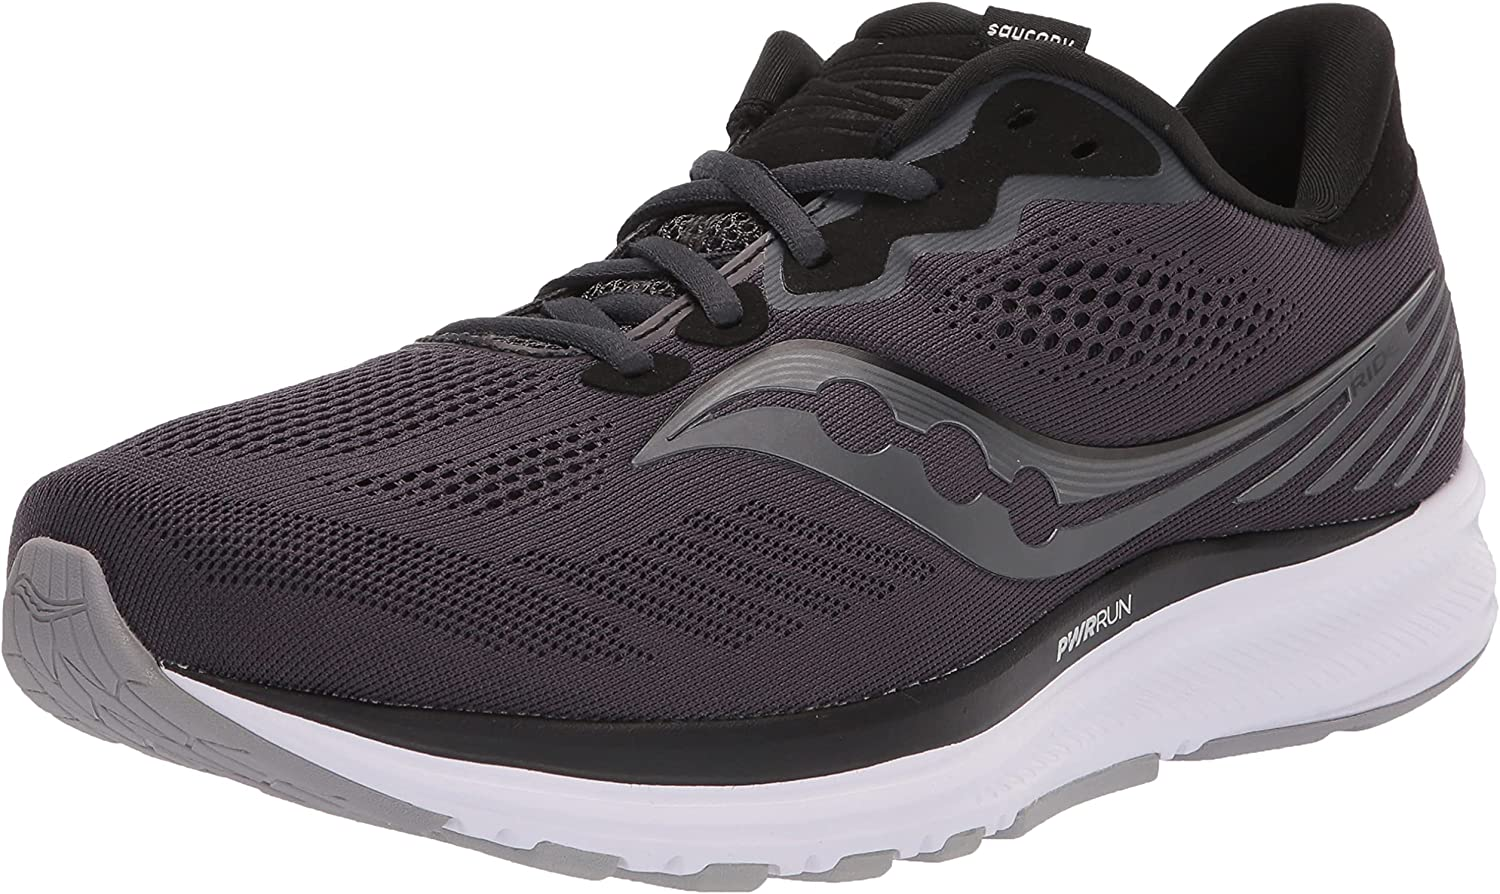 Saucony Women's Ride Running Complete Free sold out Shipping Shoe 14